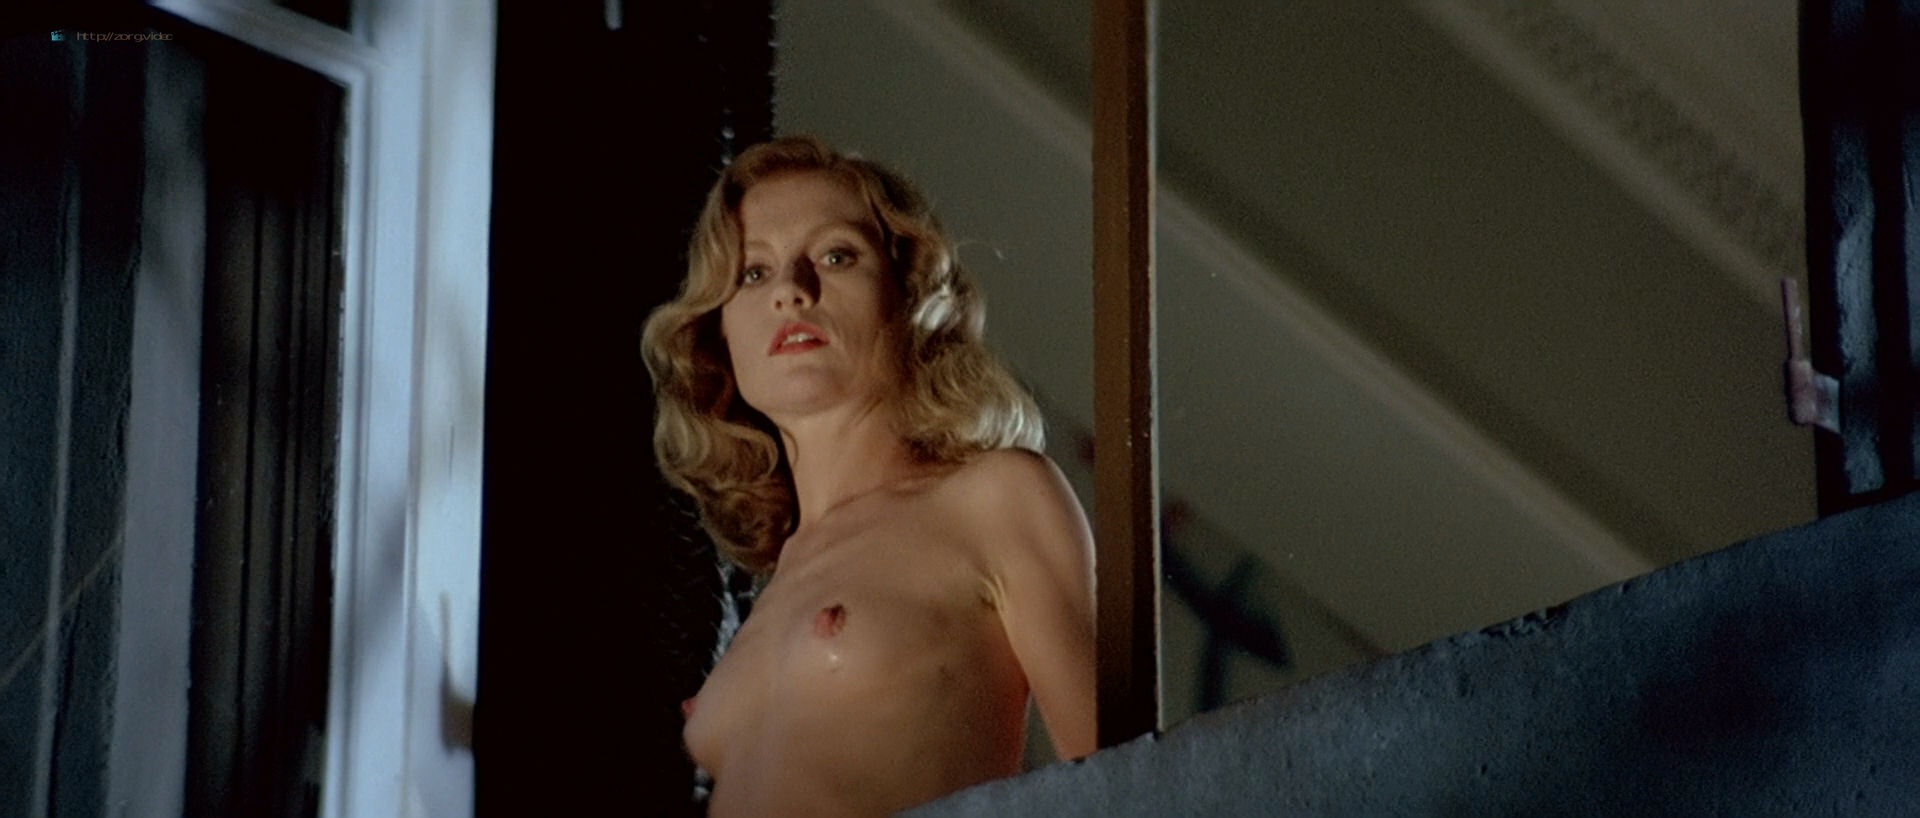 Isabelle Huppert nude topless and butt Elizabeth McGovern nude - The Bedroom Window (1987) HD 1080p BluRay (10)